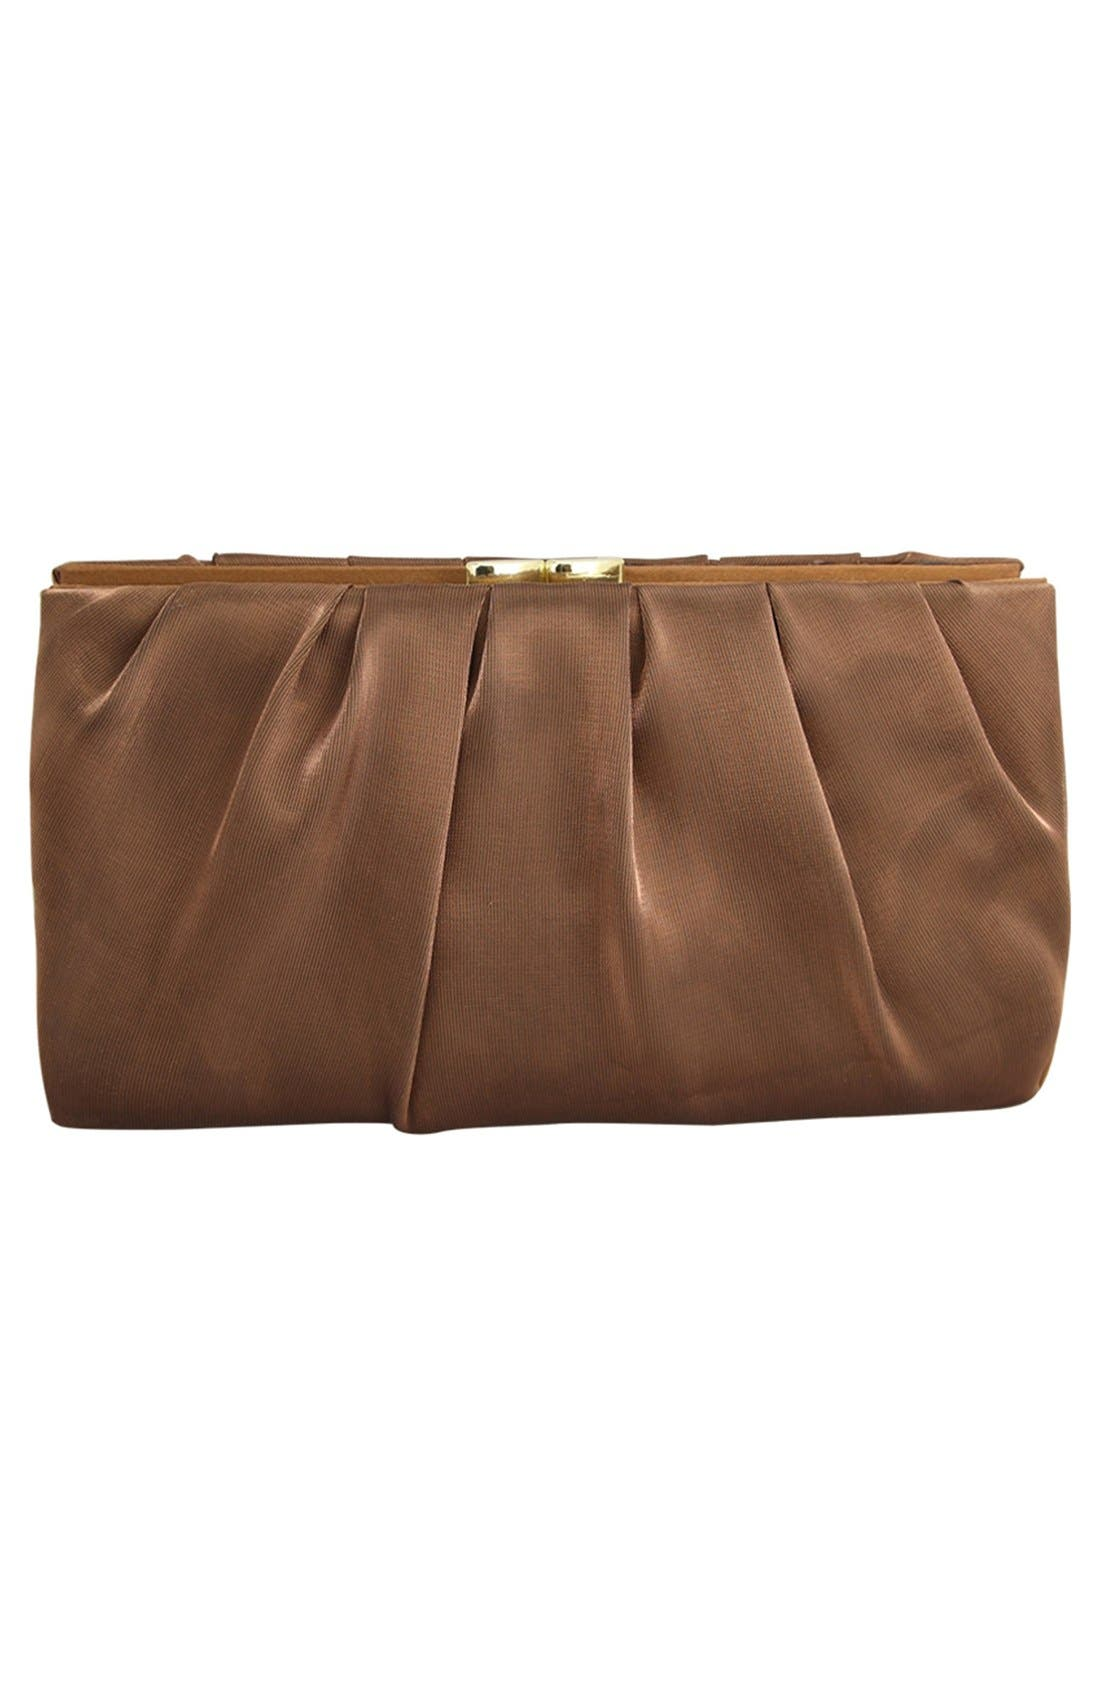 'Larry' Satin Clutch,                             Alternate thumbnail 2, color,                             200